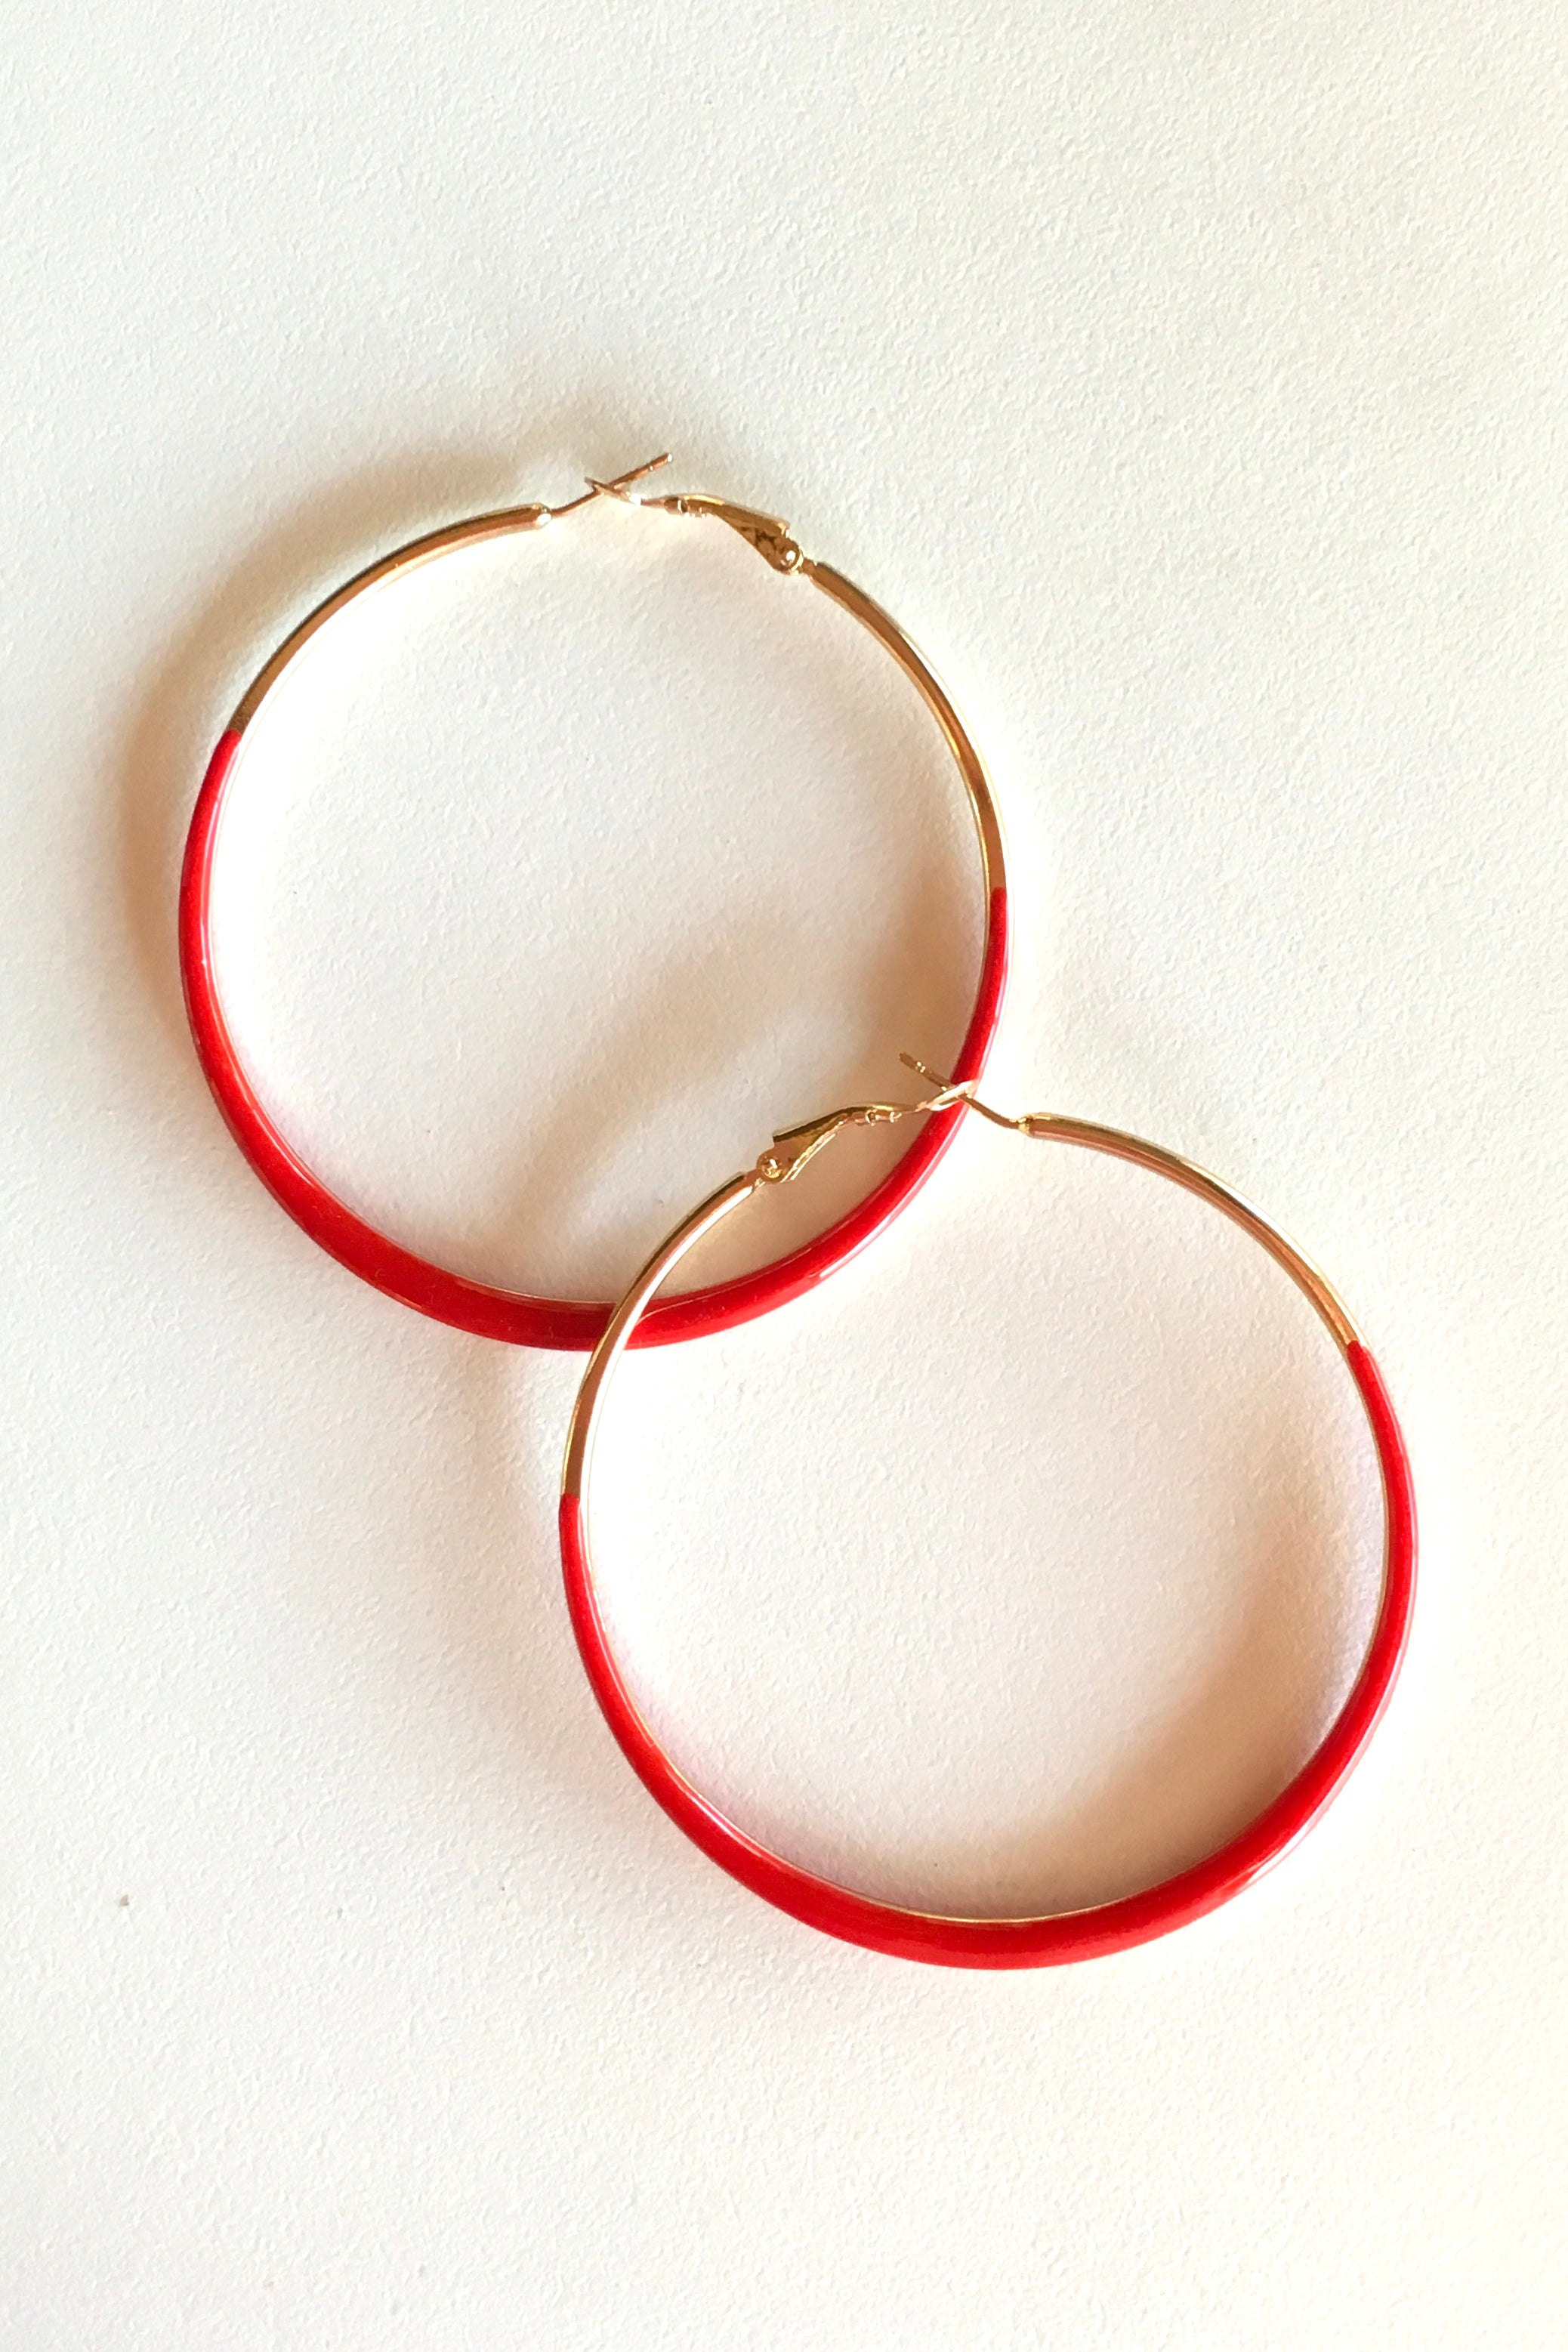 Earring Hoop in four colours, 80s style hoop enamel and gold earring